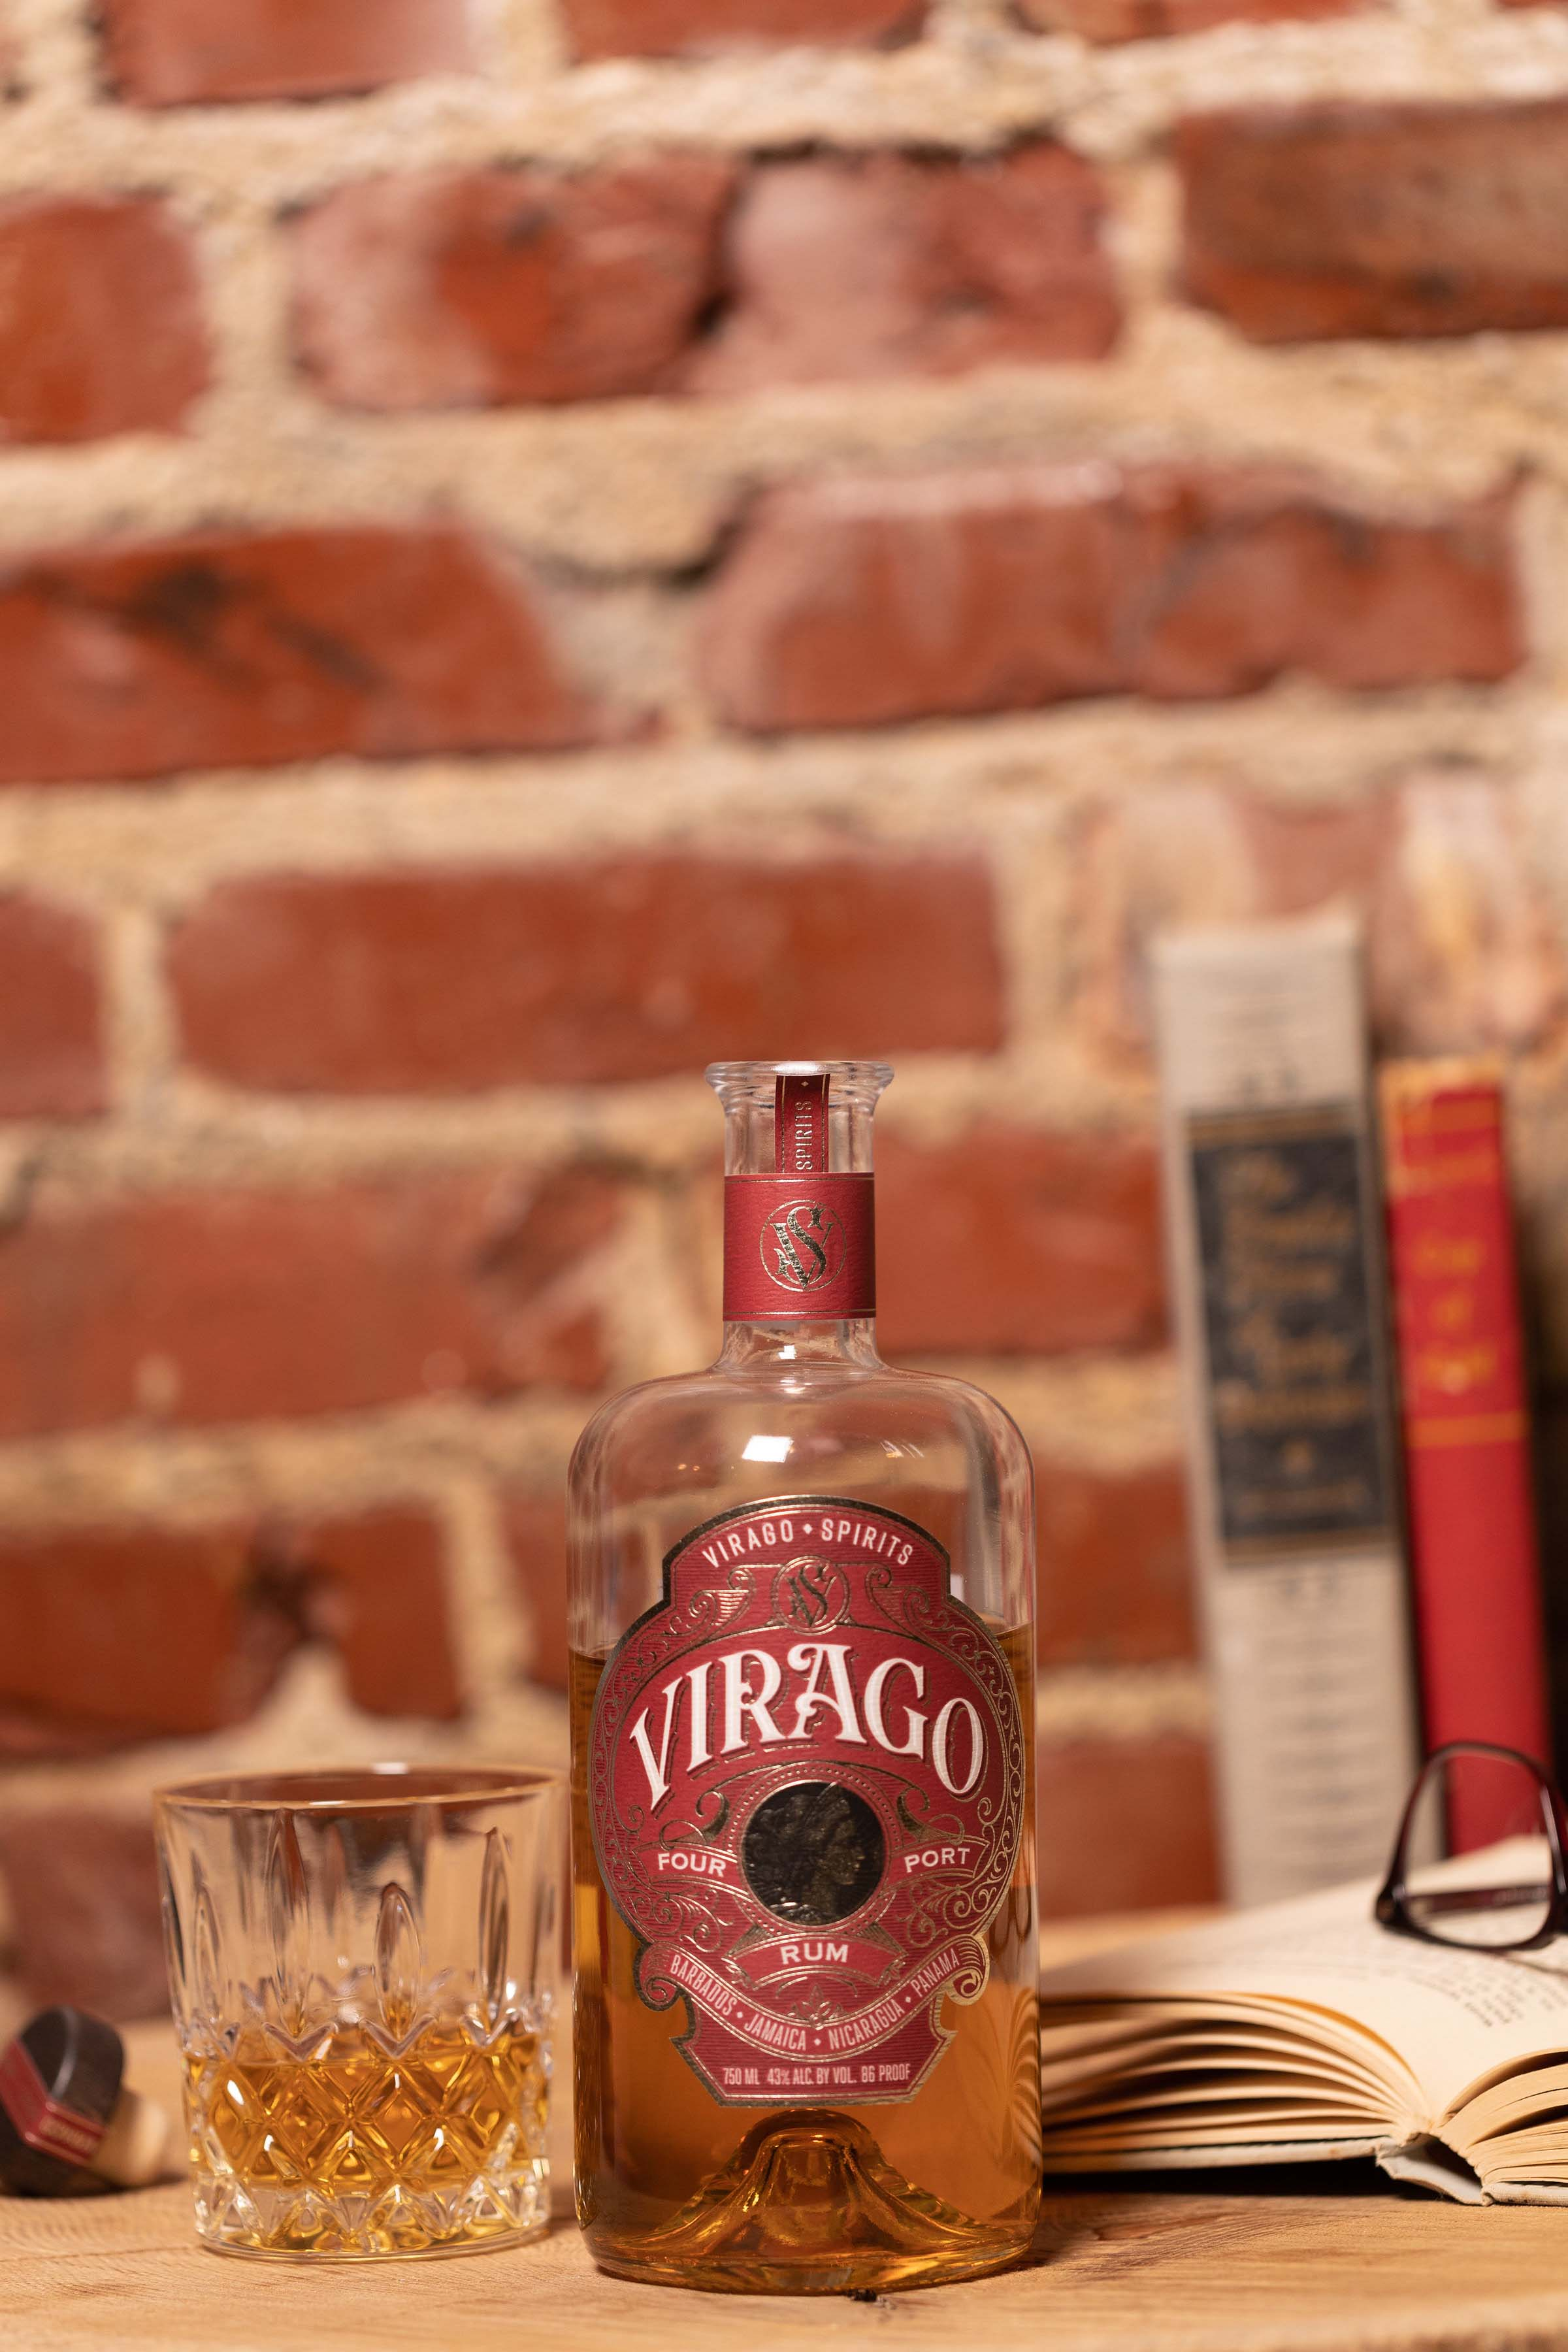 Virago Spirits Four Port Rum, Richmond